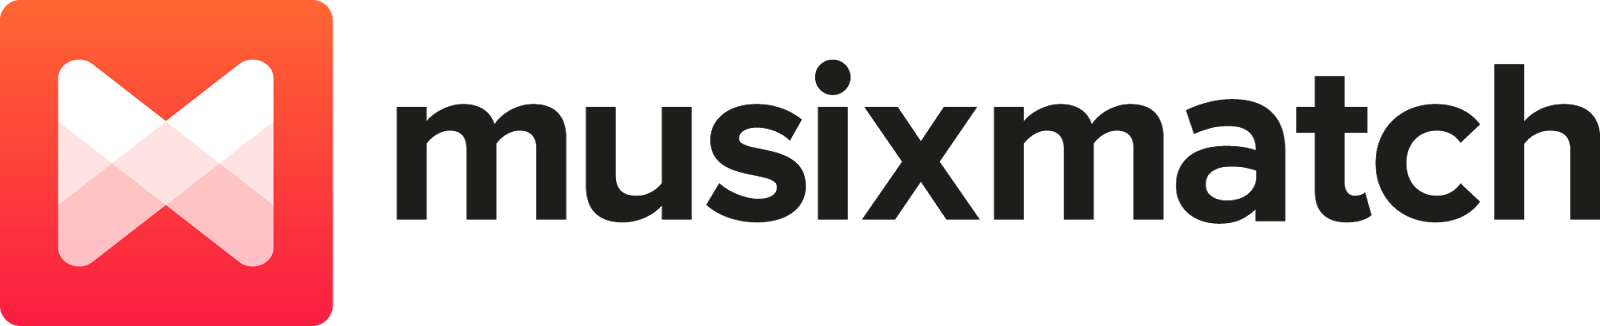 Musixmatch.com | Lyrics Catalogue